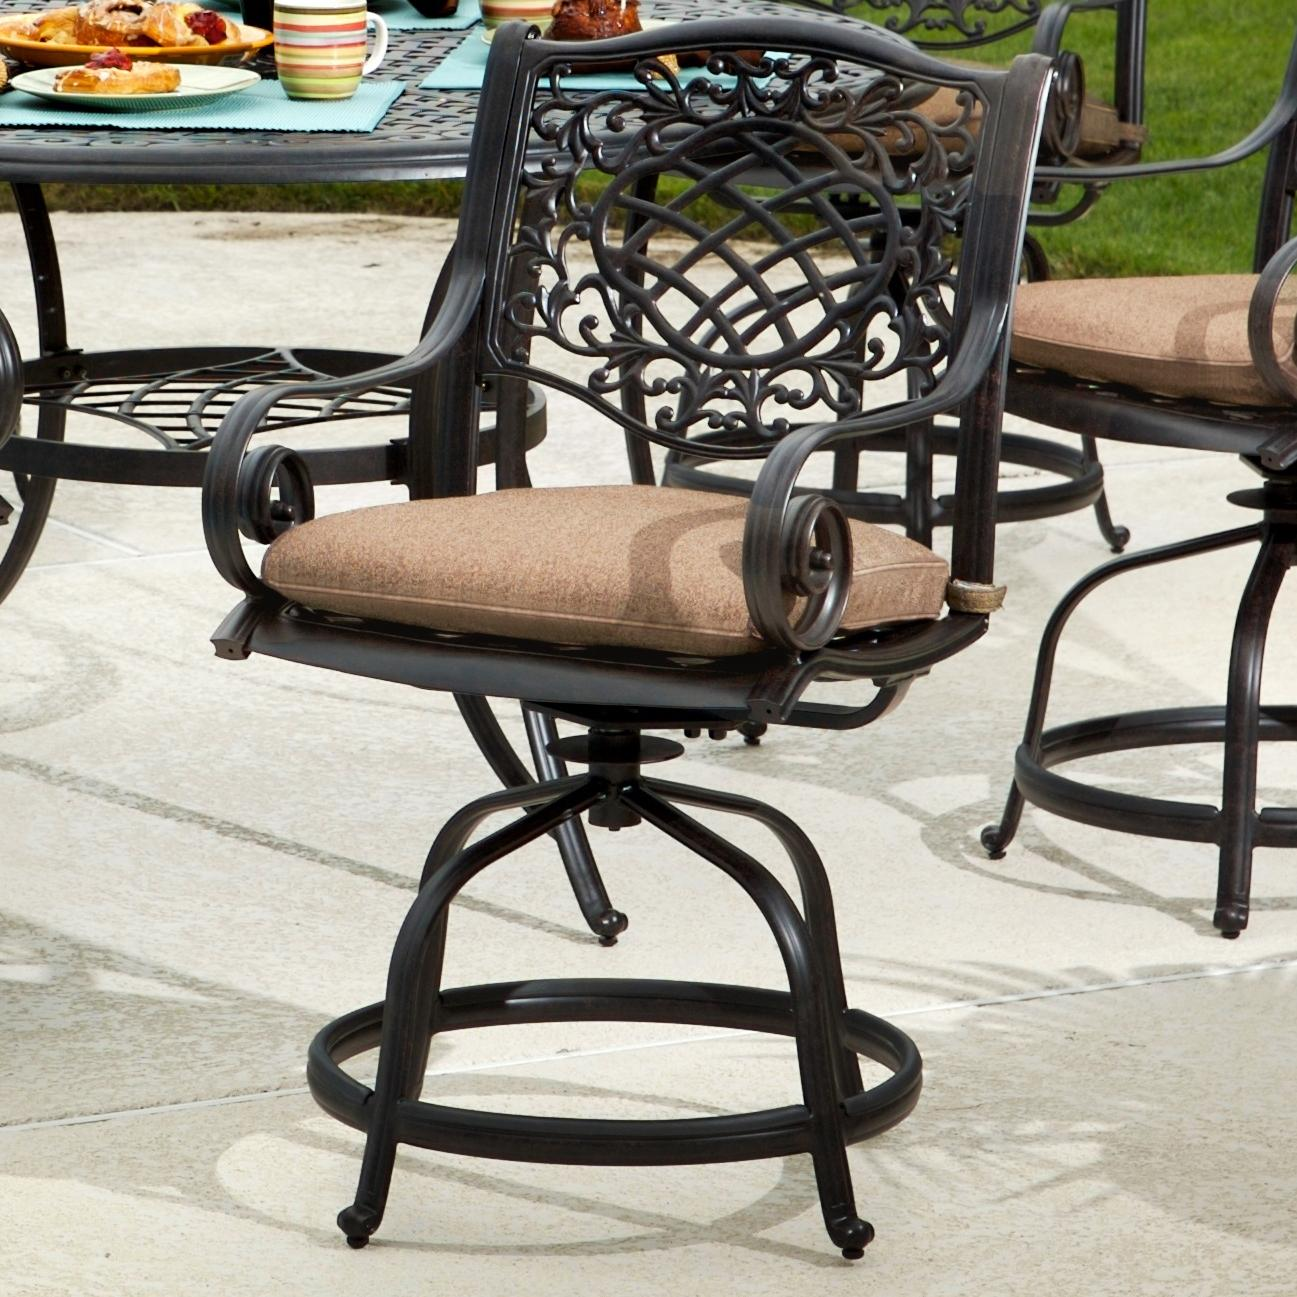 Agio Rochester Outdoor Alumicast Balcony Gathering Height Swivel Chair With  Seat Pad